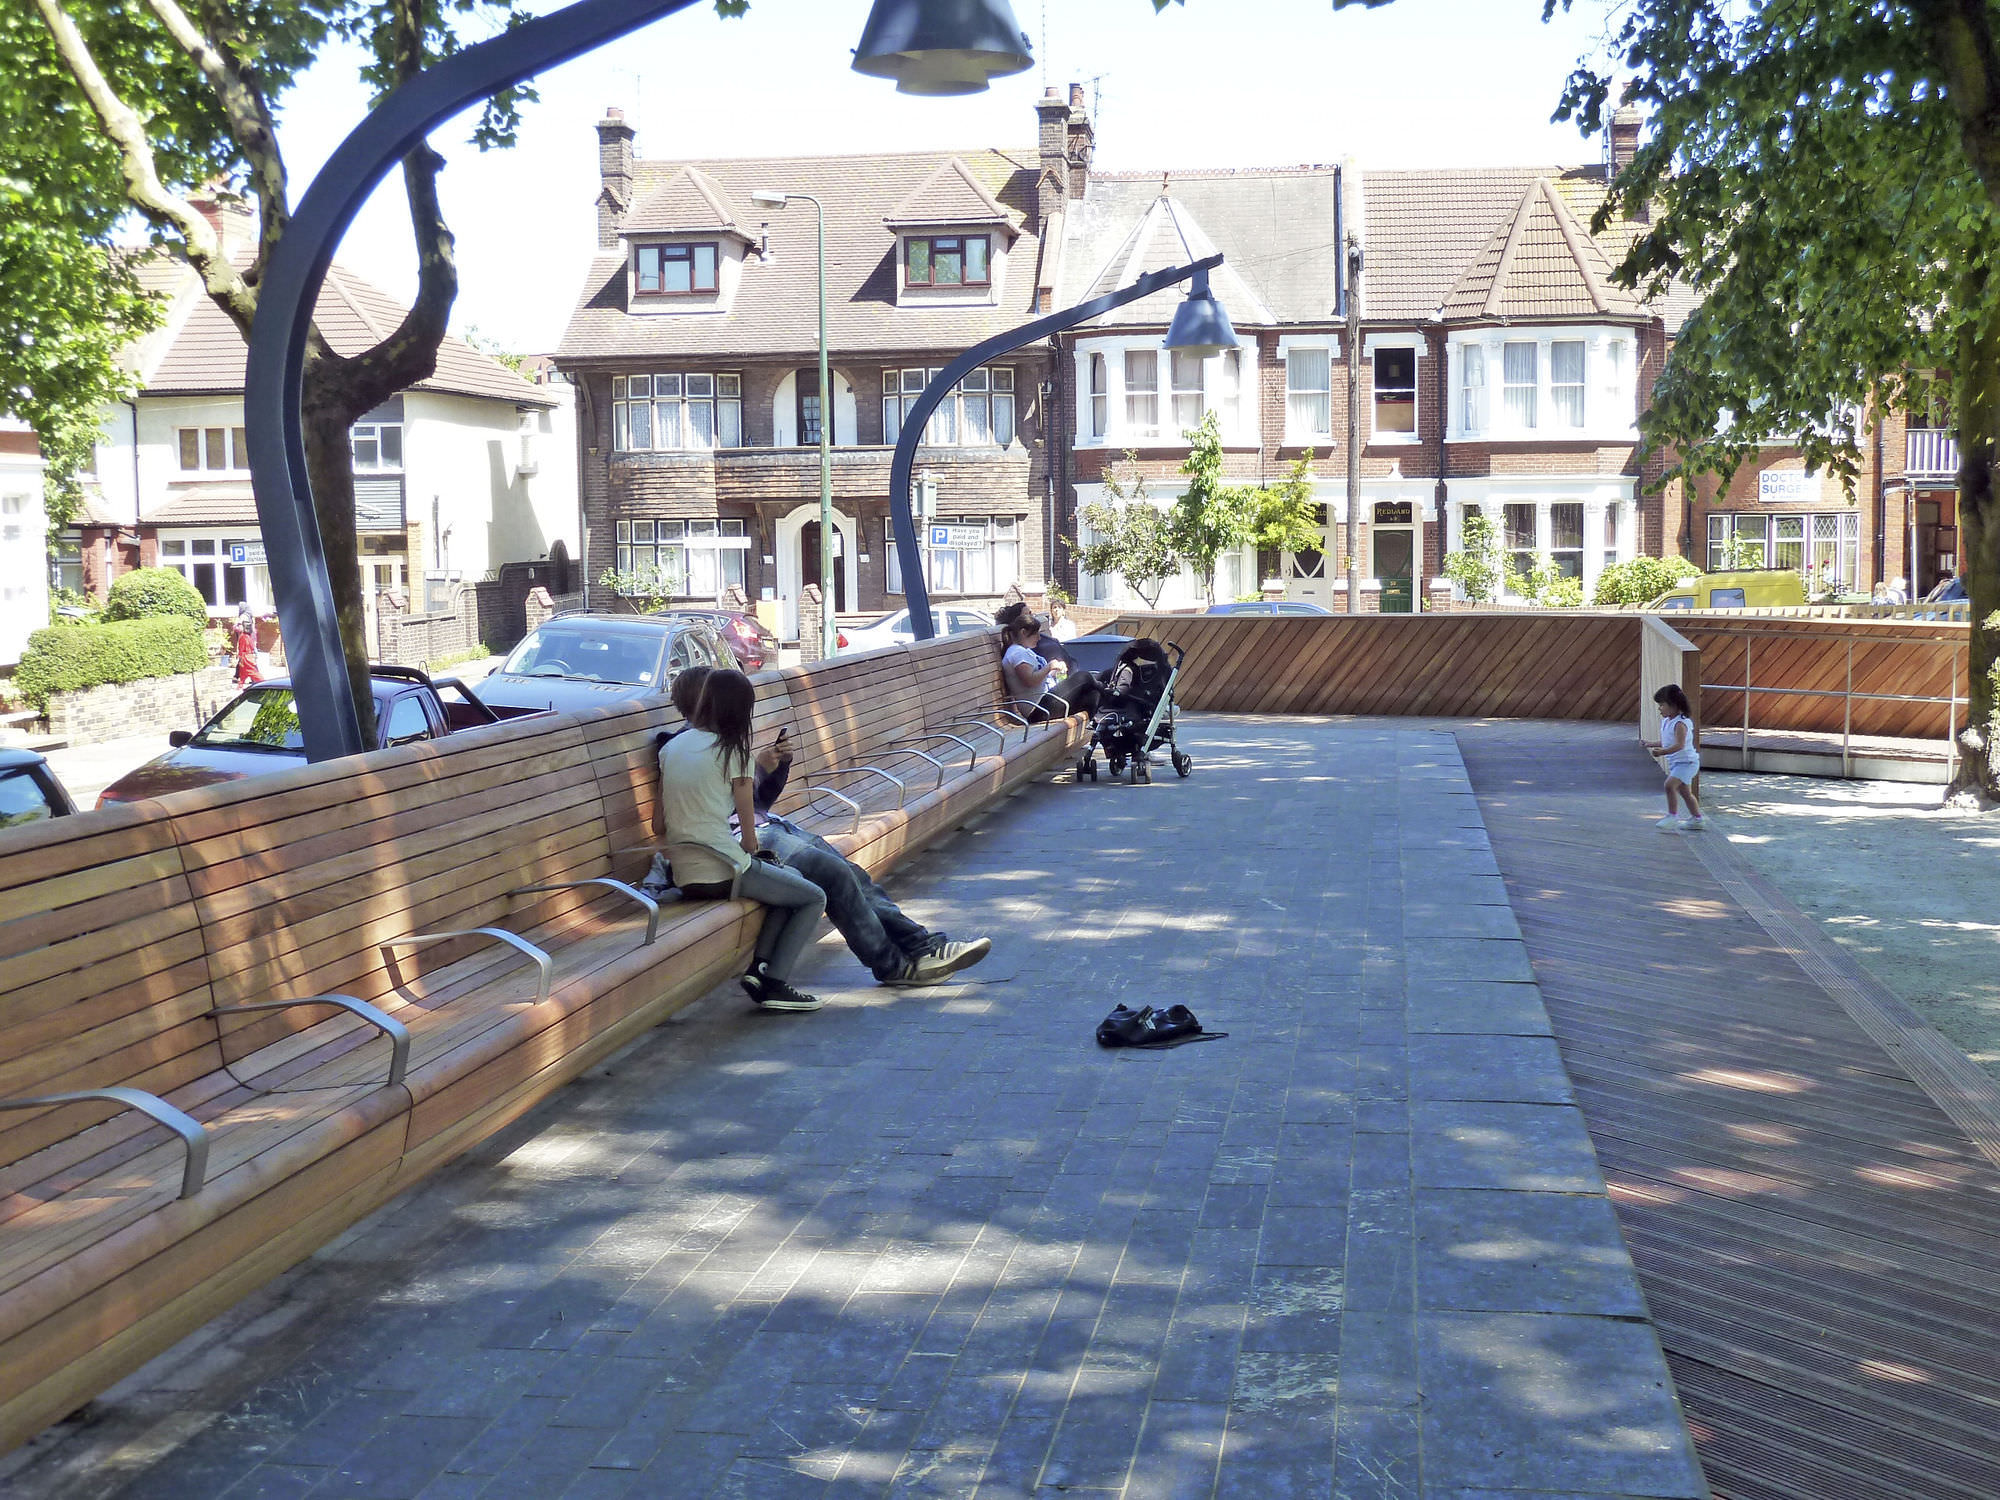 Picturesque Public Bench  Contemporary  Wooden  Stainless Steel  Warrior  With Lovable  Public Bench  Contemporary  Wooden  Stainless Steel Warrior Square  Gardens Factory Street Furniture  With Amazing Large Ceramic Garden Planters Also Highgrove Gardens Tetbury In Addition Compact Garden Hose As Seen On Tv And Garden Love Seat Cover As Well As West Palm Beach Garden Additionally Garden Shredder Nz From Archiexpocom With   Lovable Public Bench  Contemporary  Wooden  Stainless Steel  Warrior  With Amazing  Public Bench  Contemporary  Wooden  Stainless Steel Warrior Square  Gardens Factory Street Furniture  And Picturesque Large Ceramic Garden Planters Also Highgrove Gardens Tetbury In Addition Compact Garden Hose As Seen On Tv From Archiexpocom